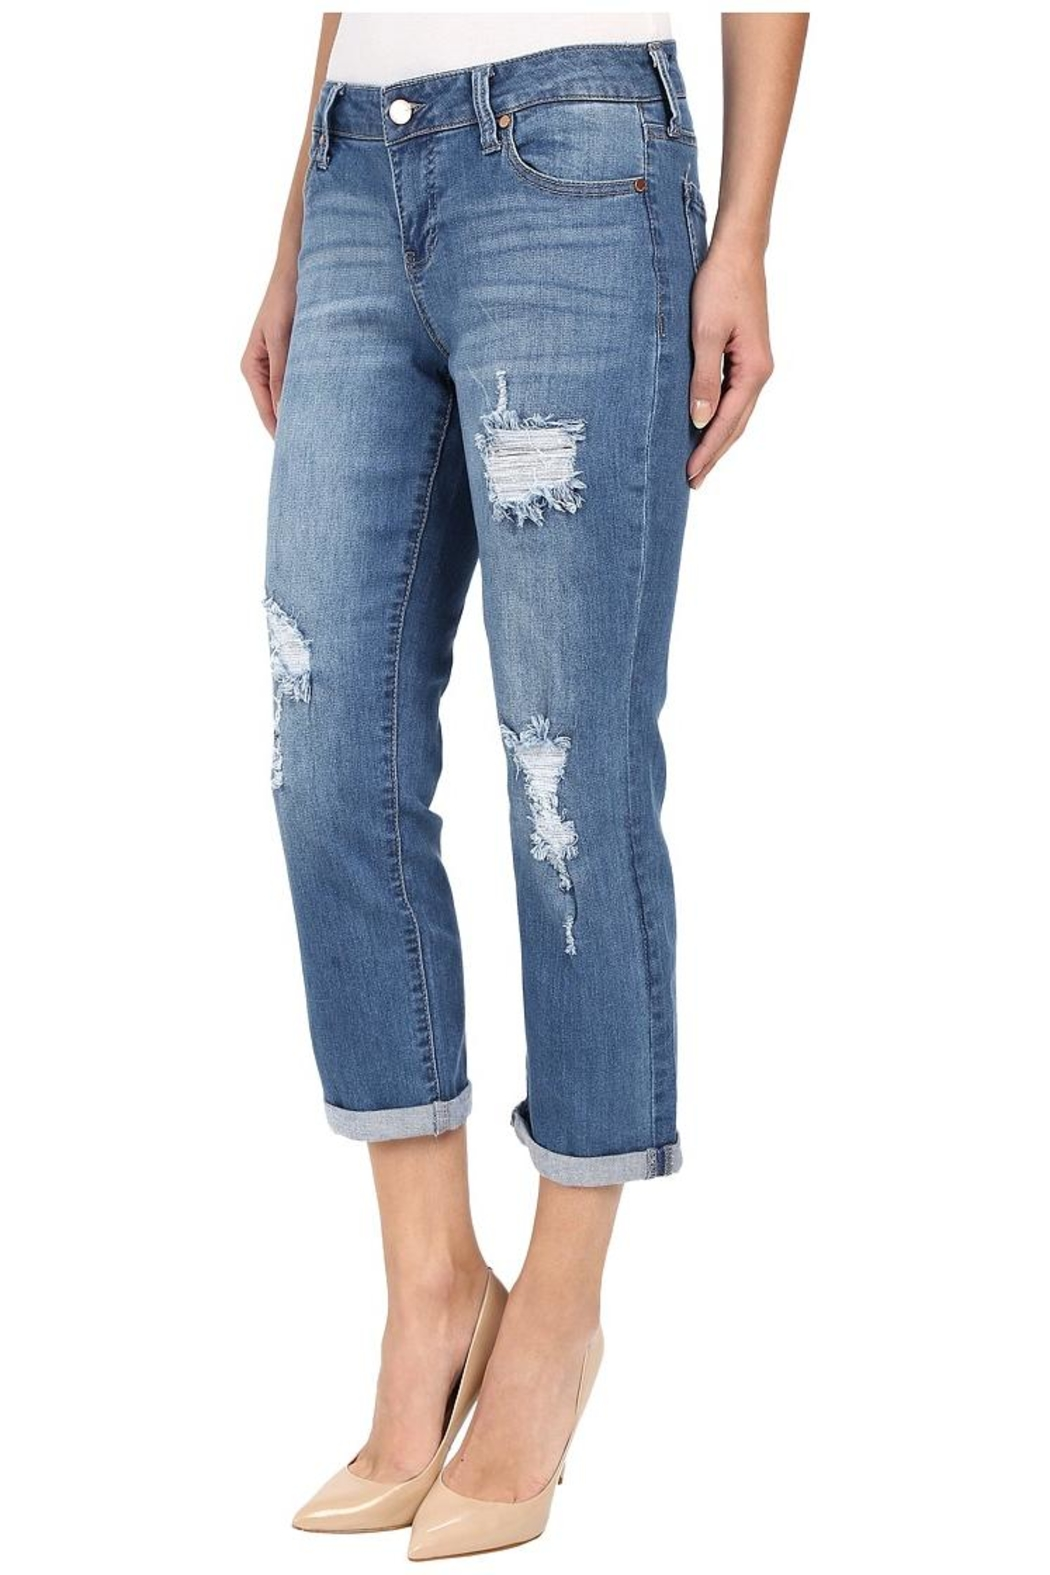 Liverpool Jeans Company Distressed Boyfriend Jeans - Front Full Image